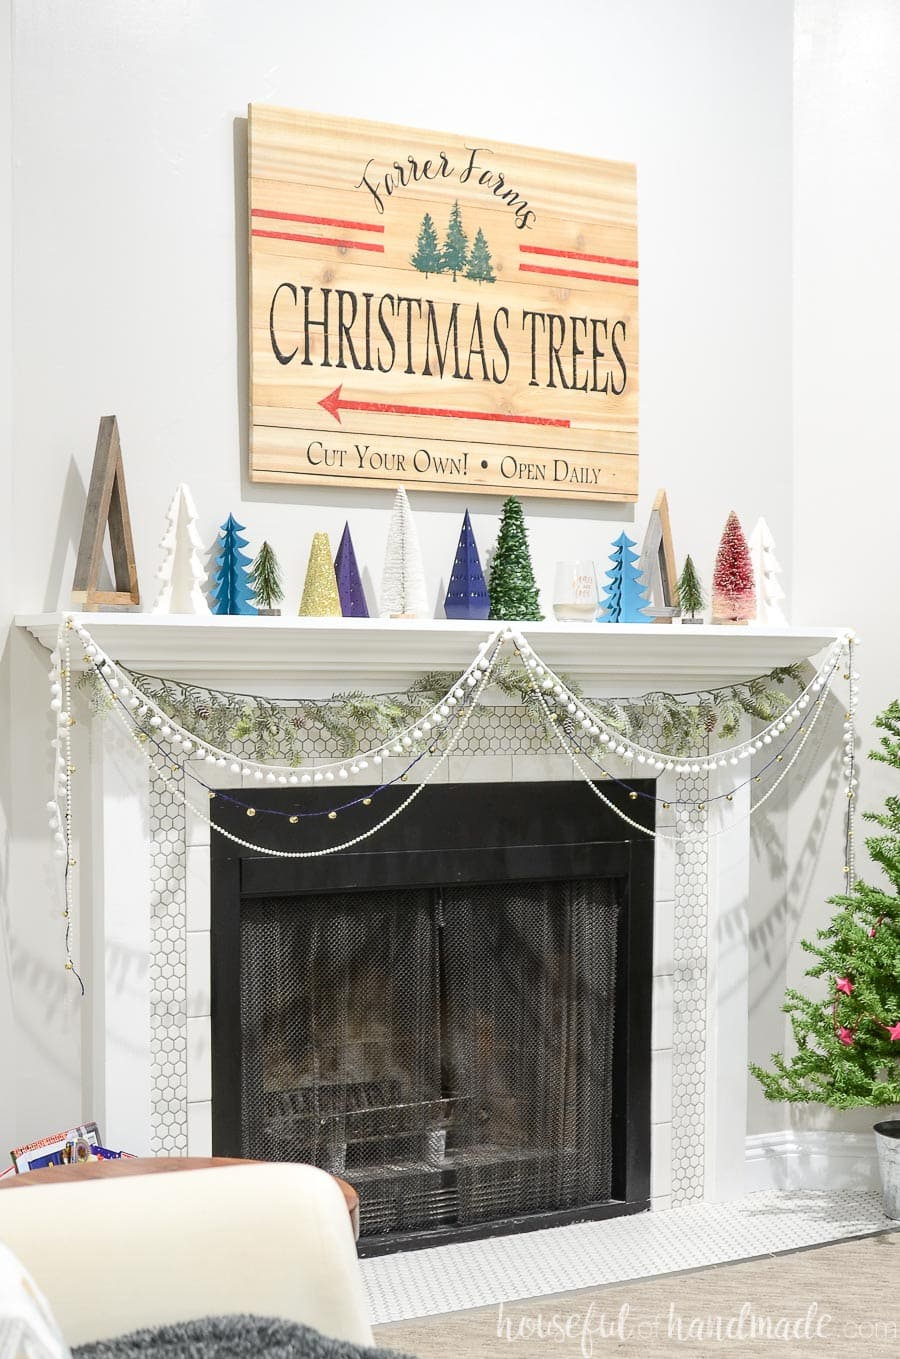 Christmas mantel decorated with reclaimed wood Christmas trees, porcelain Christmas trees and paper Christmas trees with a Christmas tree farm sign above it.